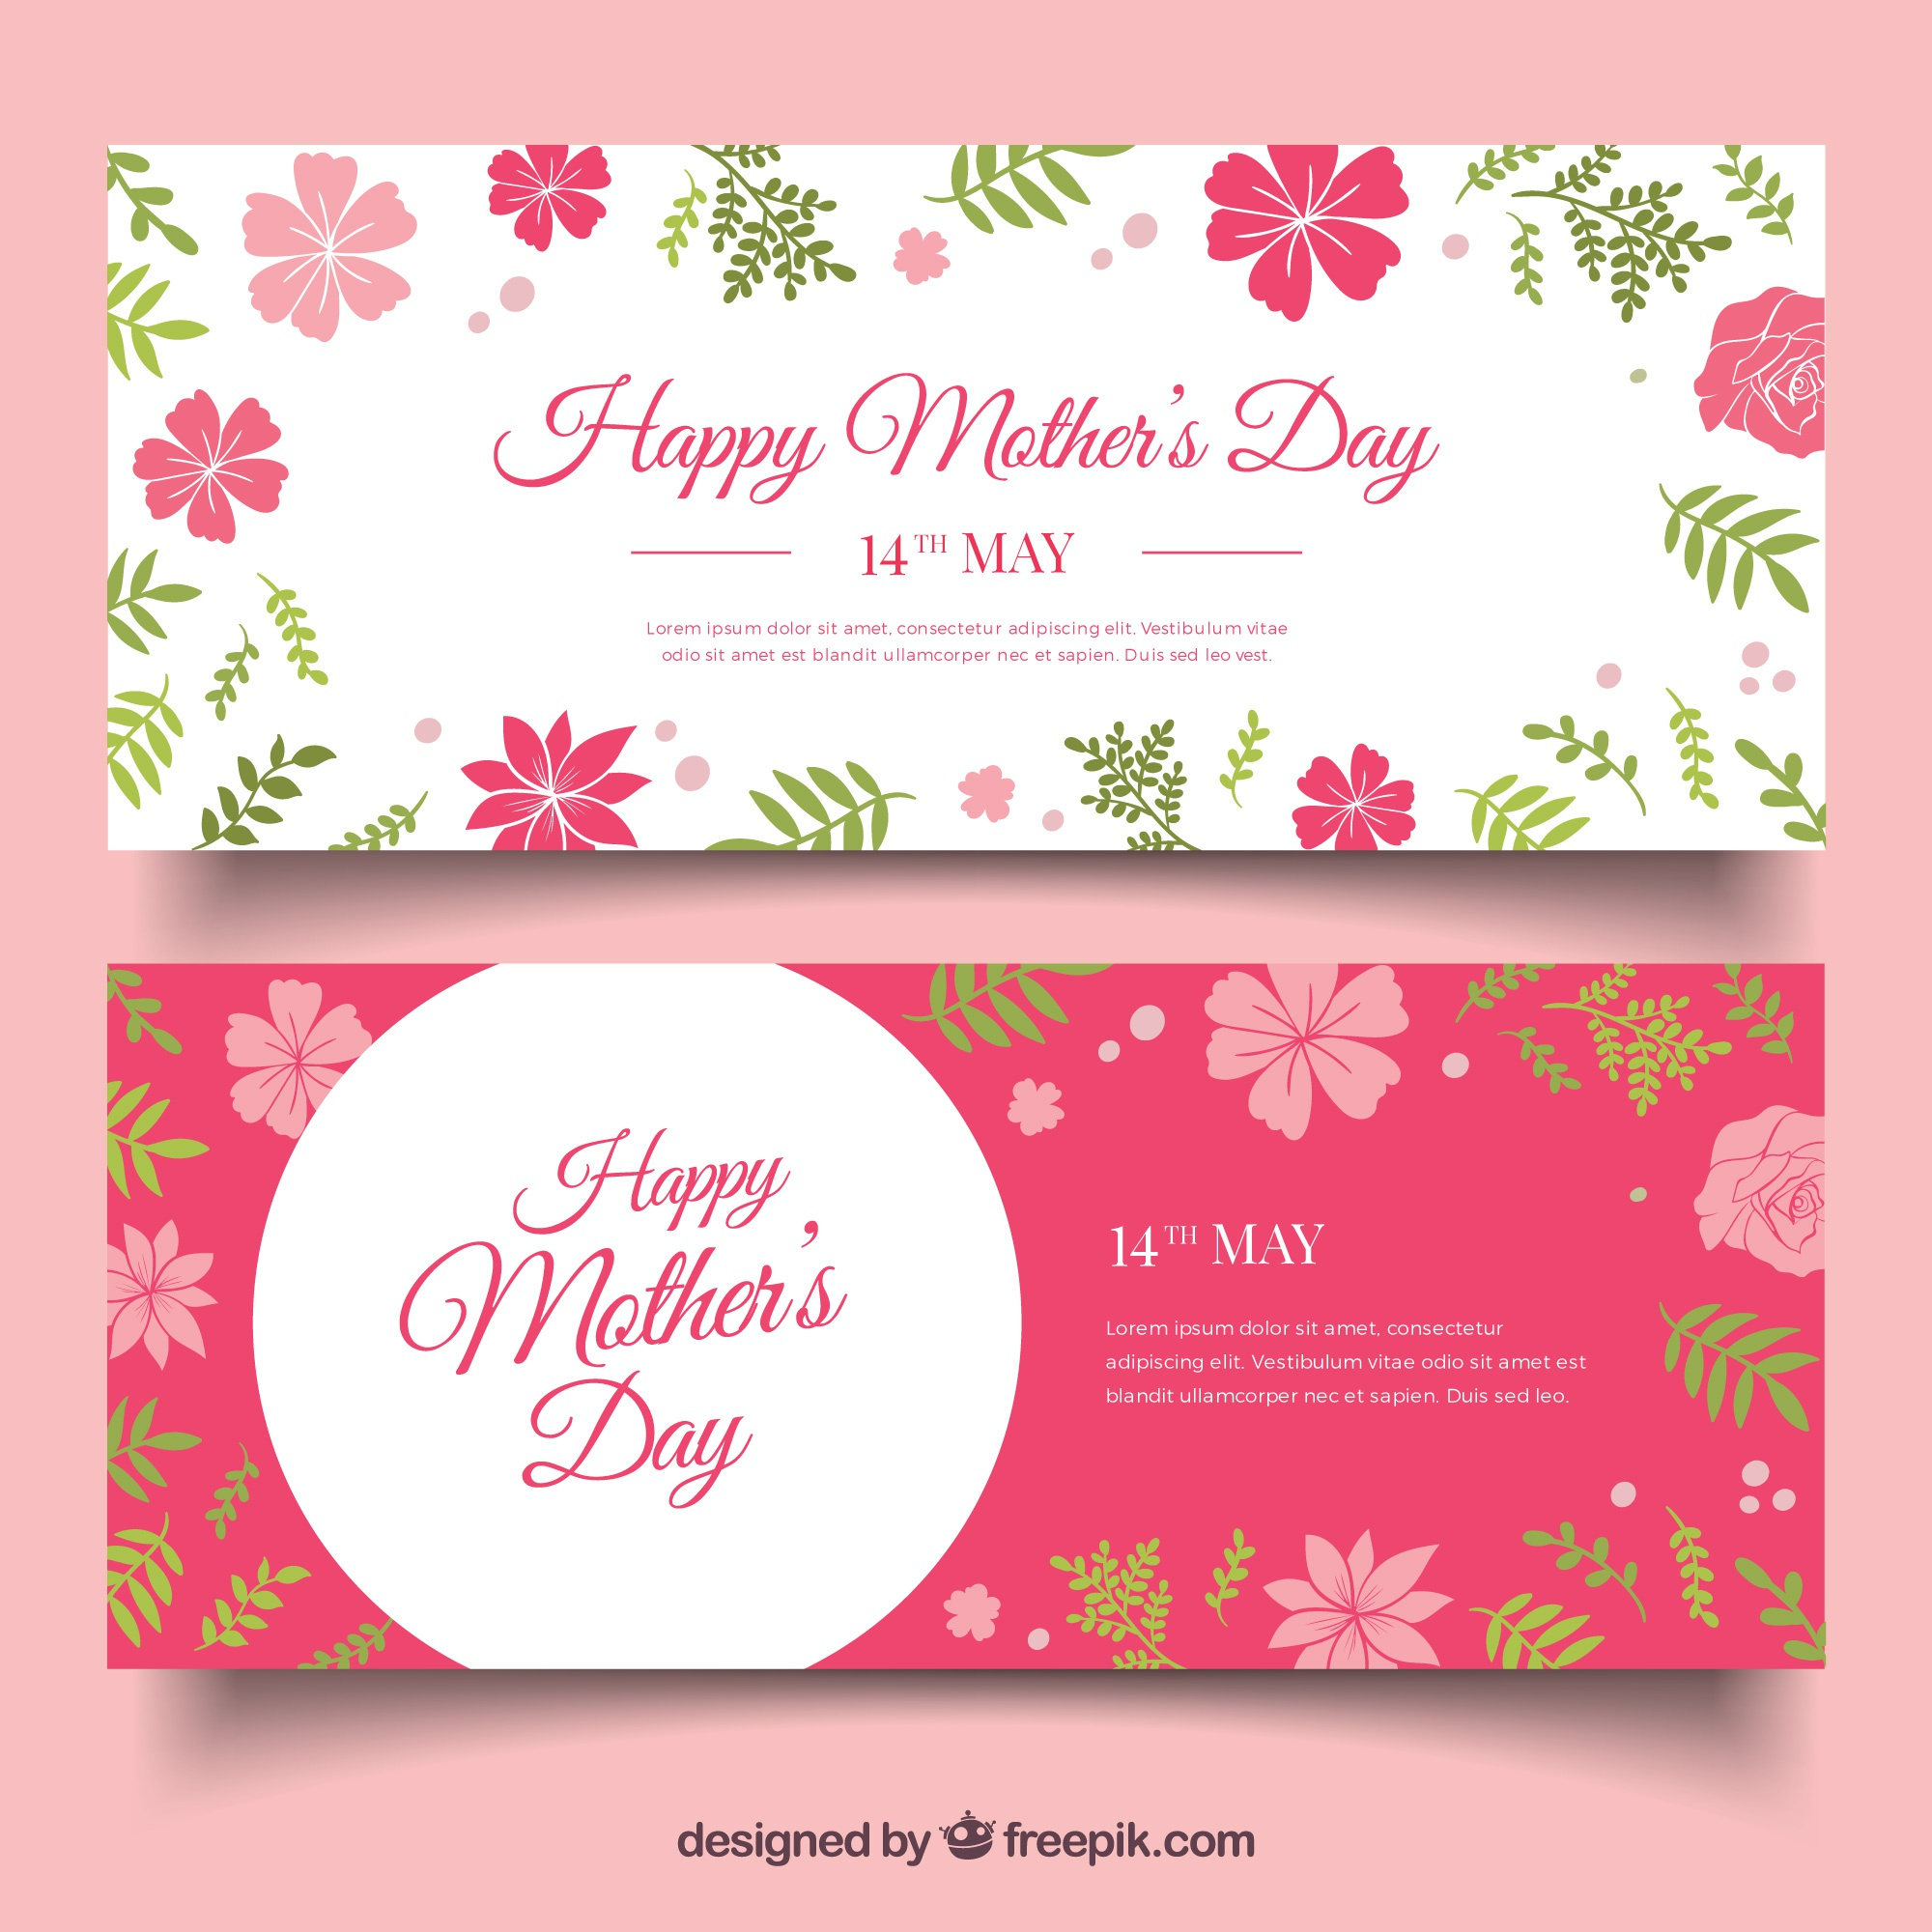 Mother's day banners with pink flowers in flat design